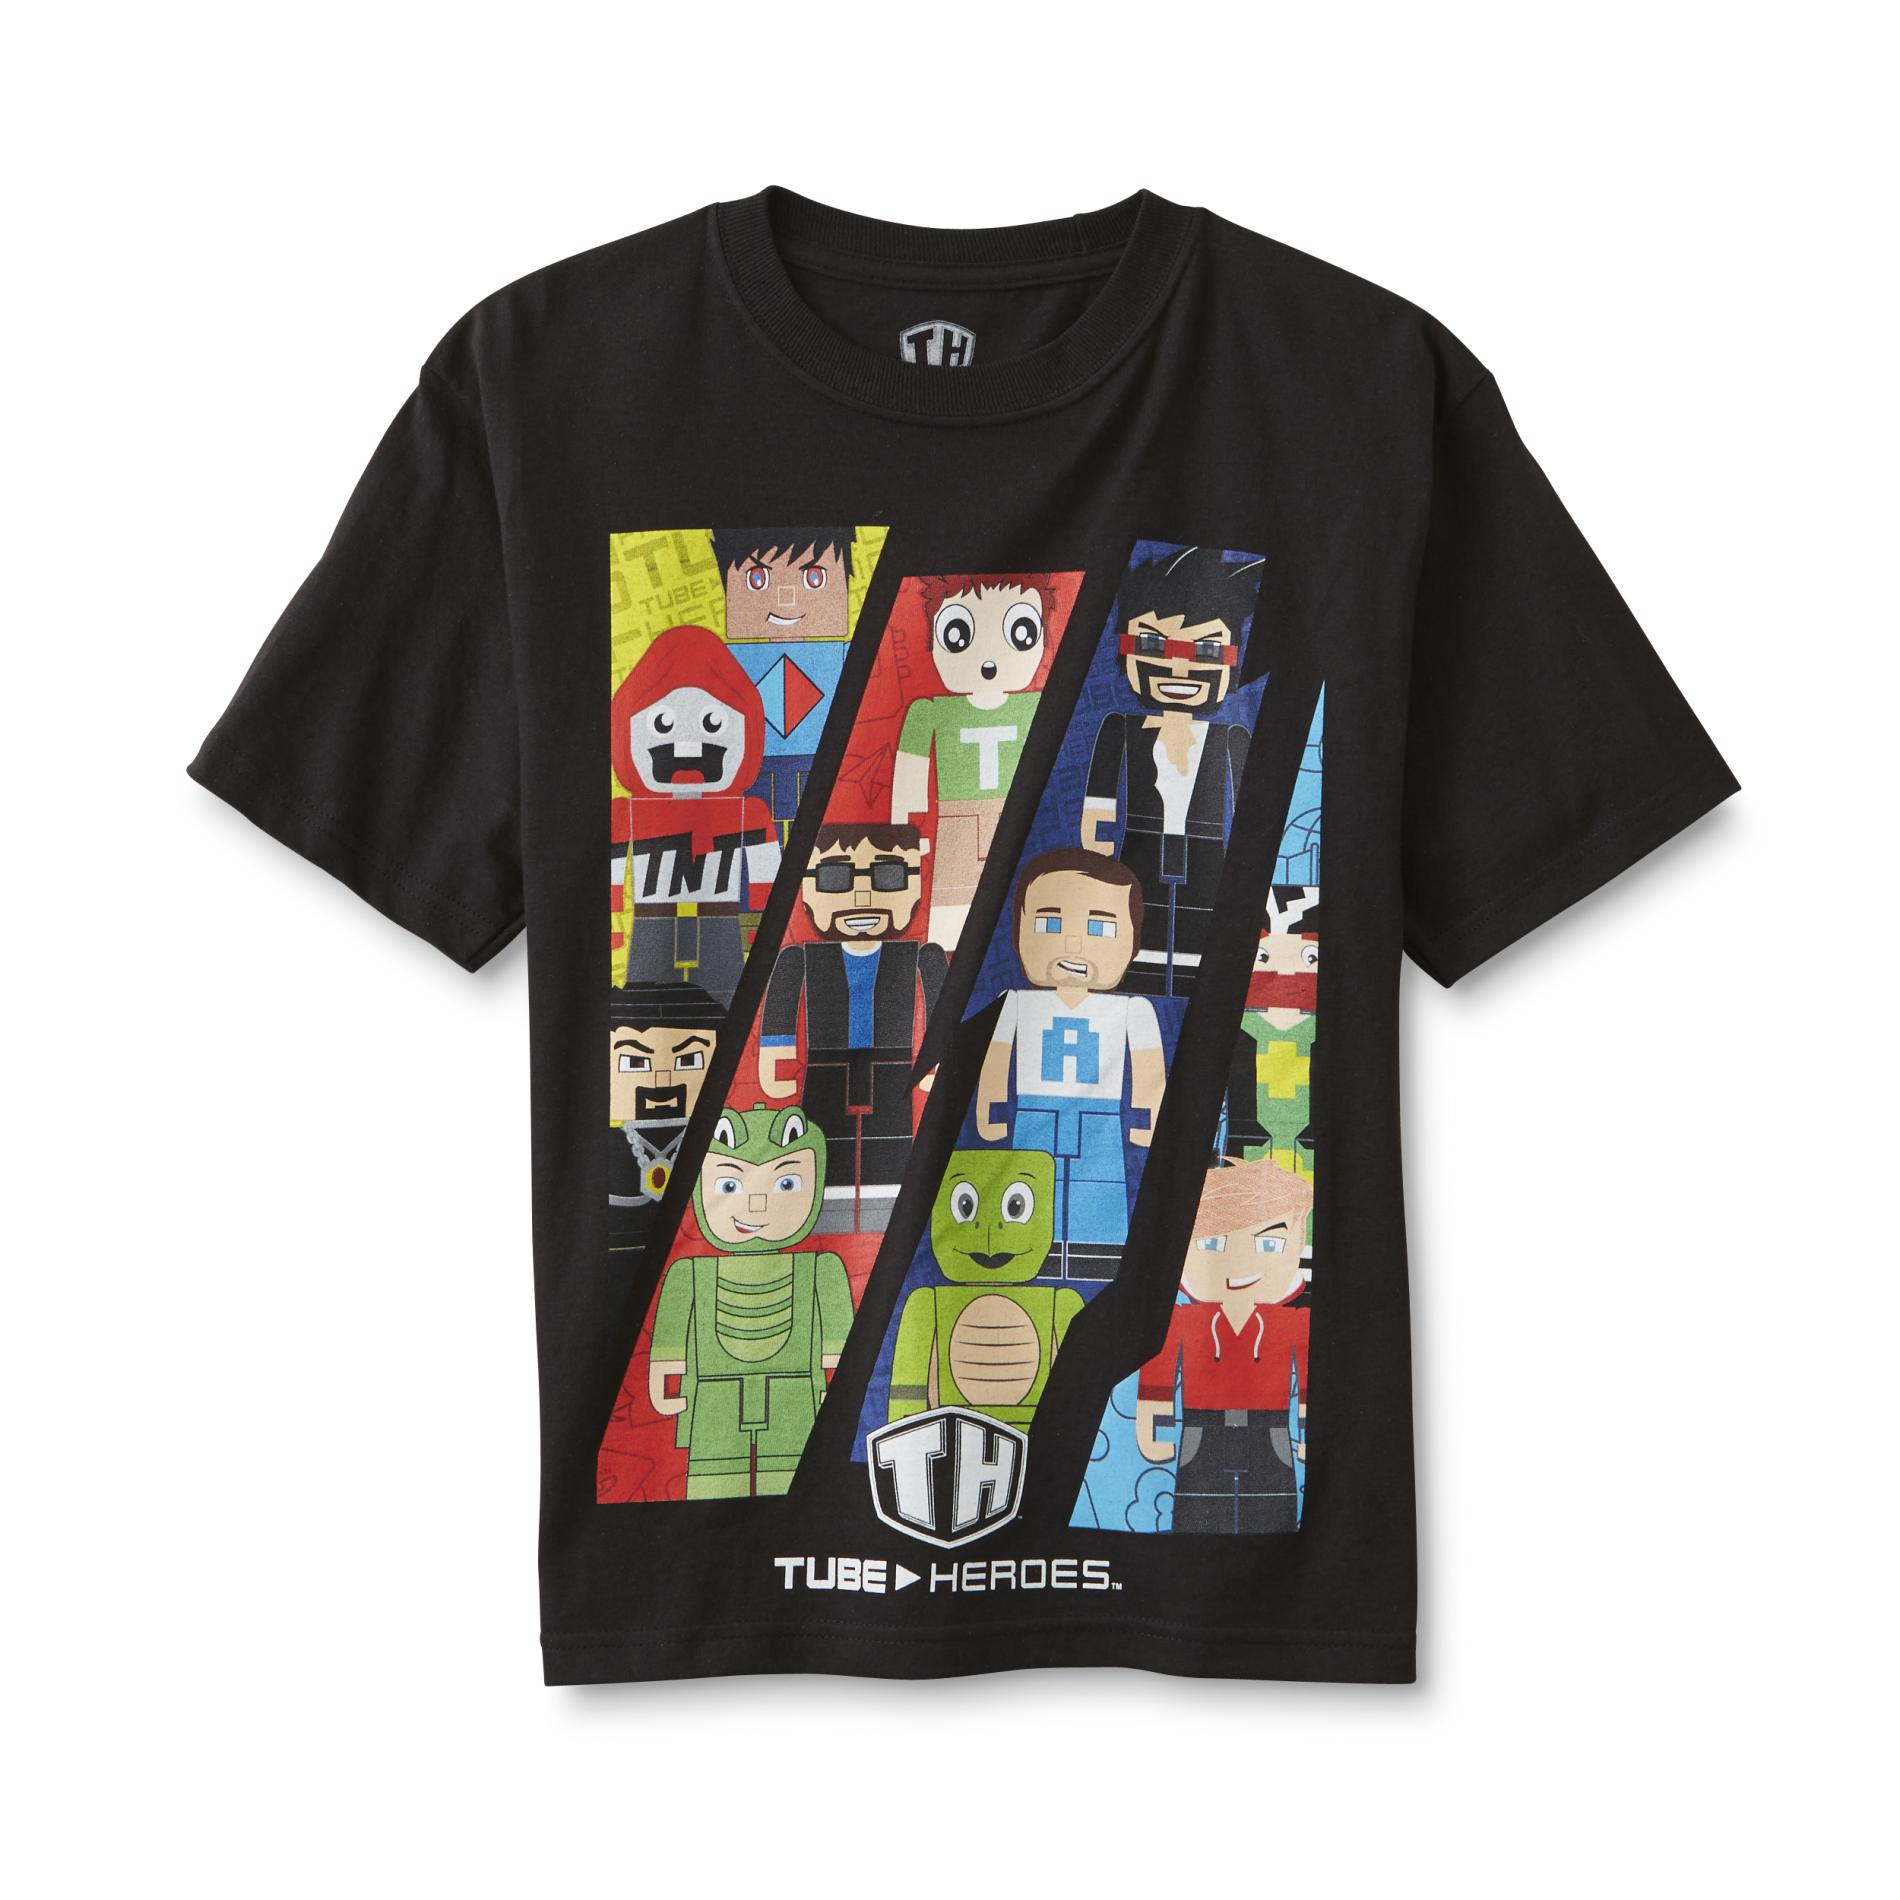 JAZWARES Tube Heroes Boy's Graphic T-Shirt 049VA89300612P